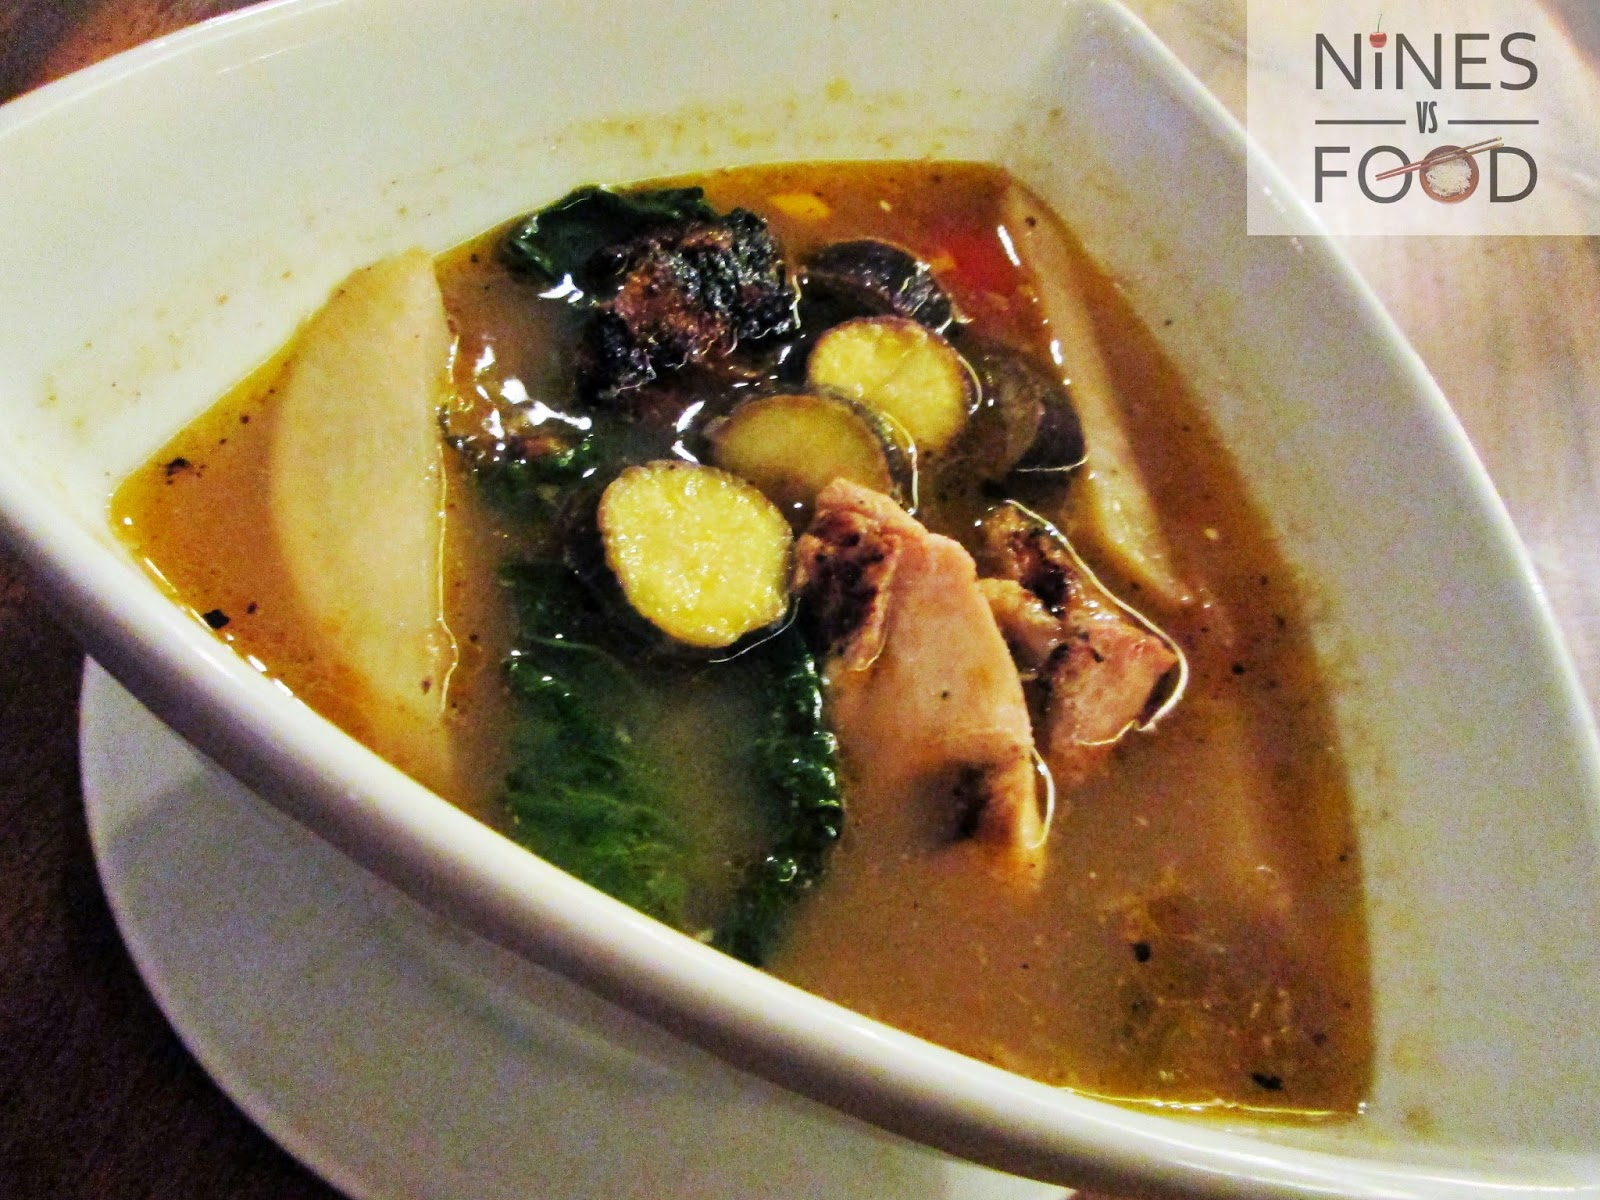 Nines vs. Food - Grilla Filipino Cuisine Makati-10.jpg